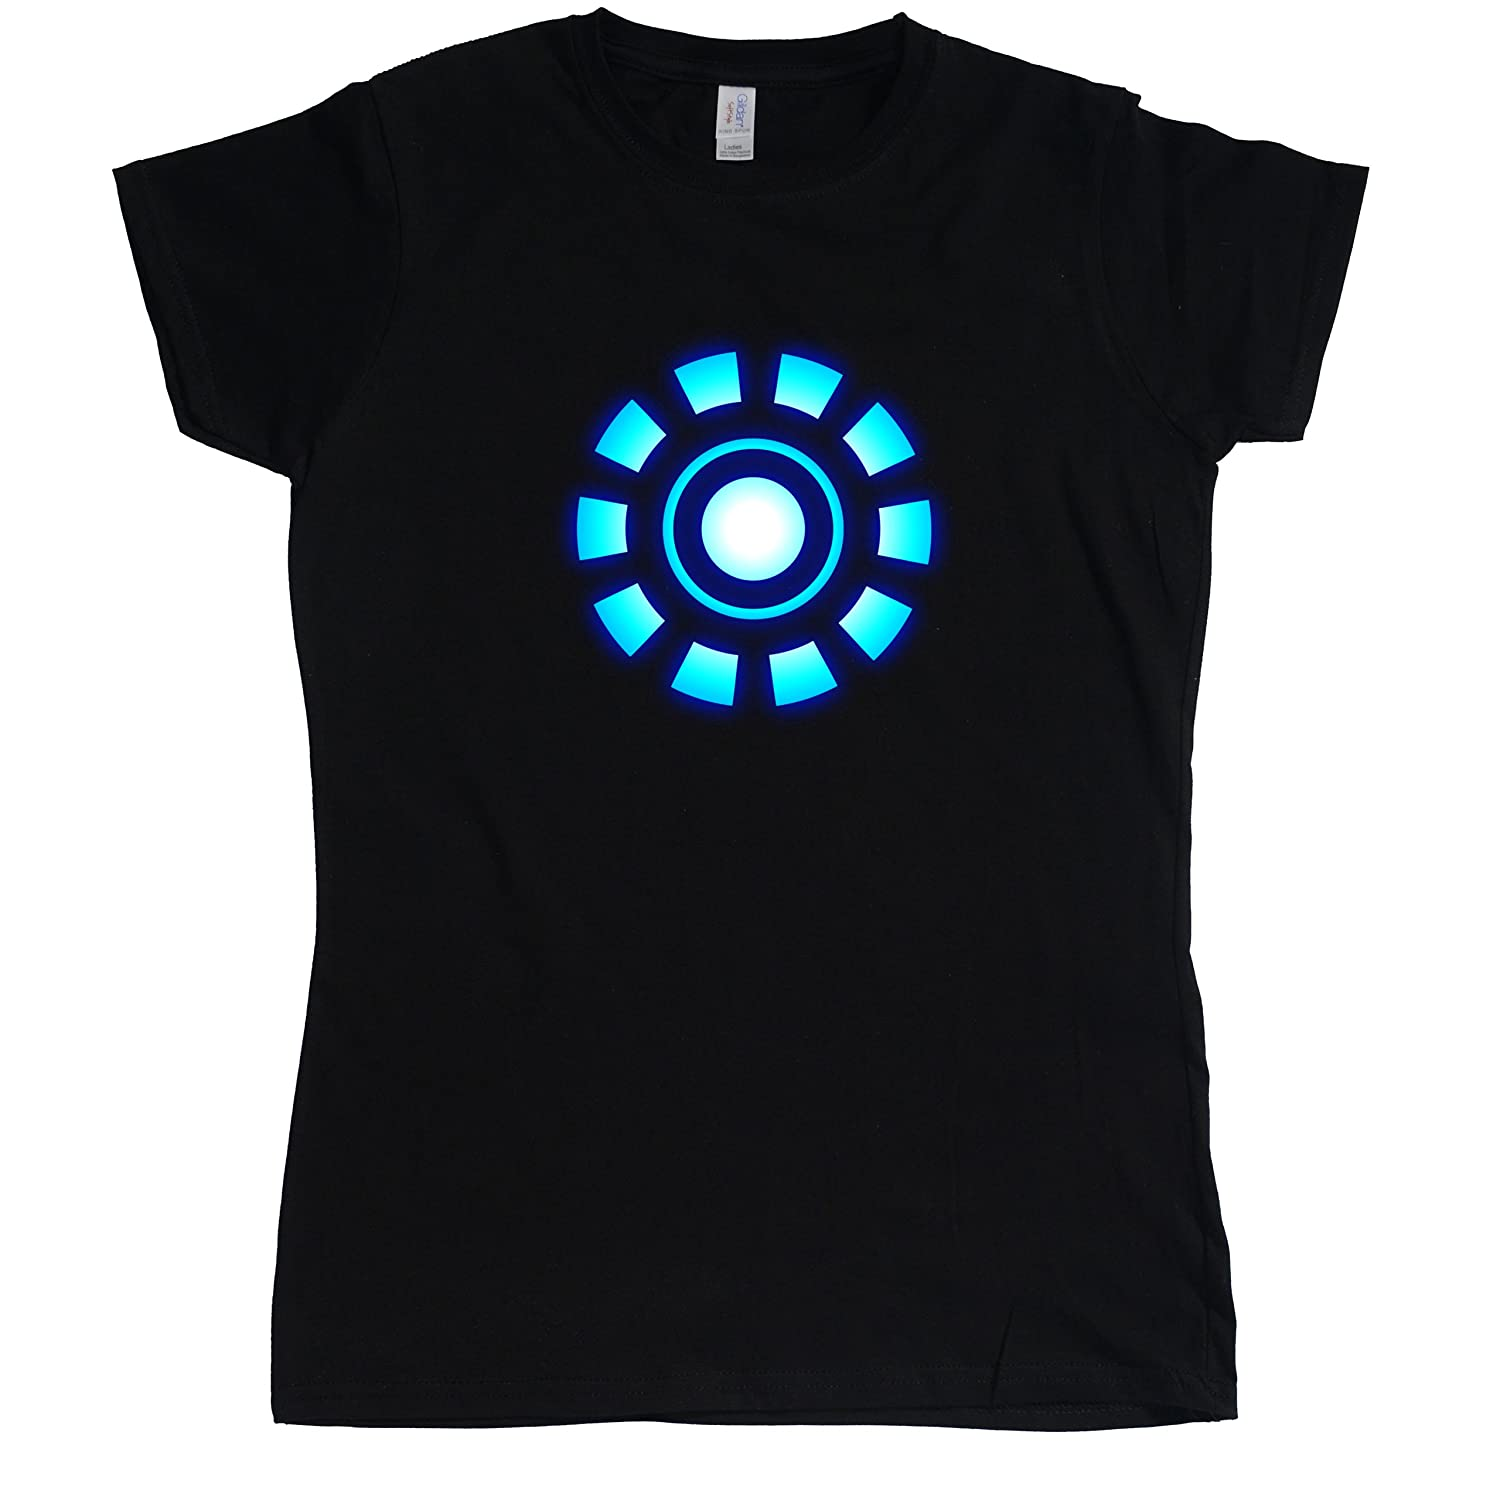 Stooble Womens's Arc Reactor Black T-Shirt, Size S Stooble - 1ClickPrint